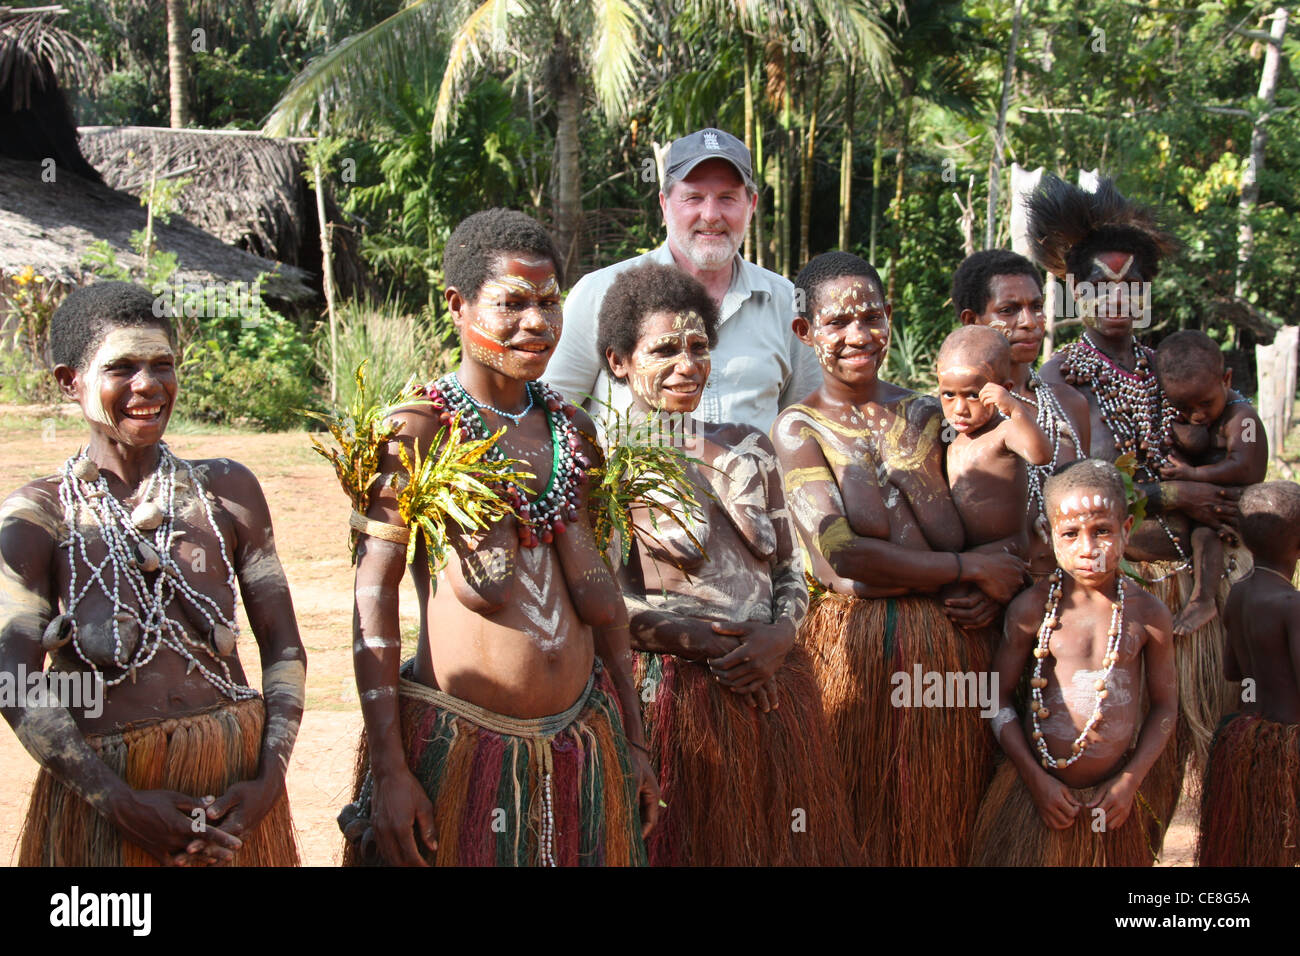 British Traveller visiting a remote village on the Karawari River in  Papua New Guinea - Stock Image